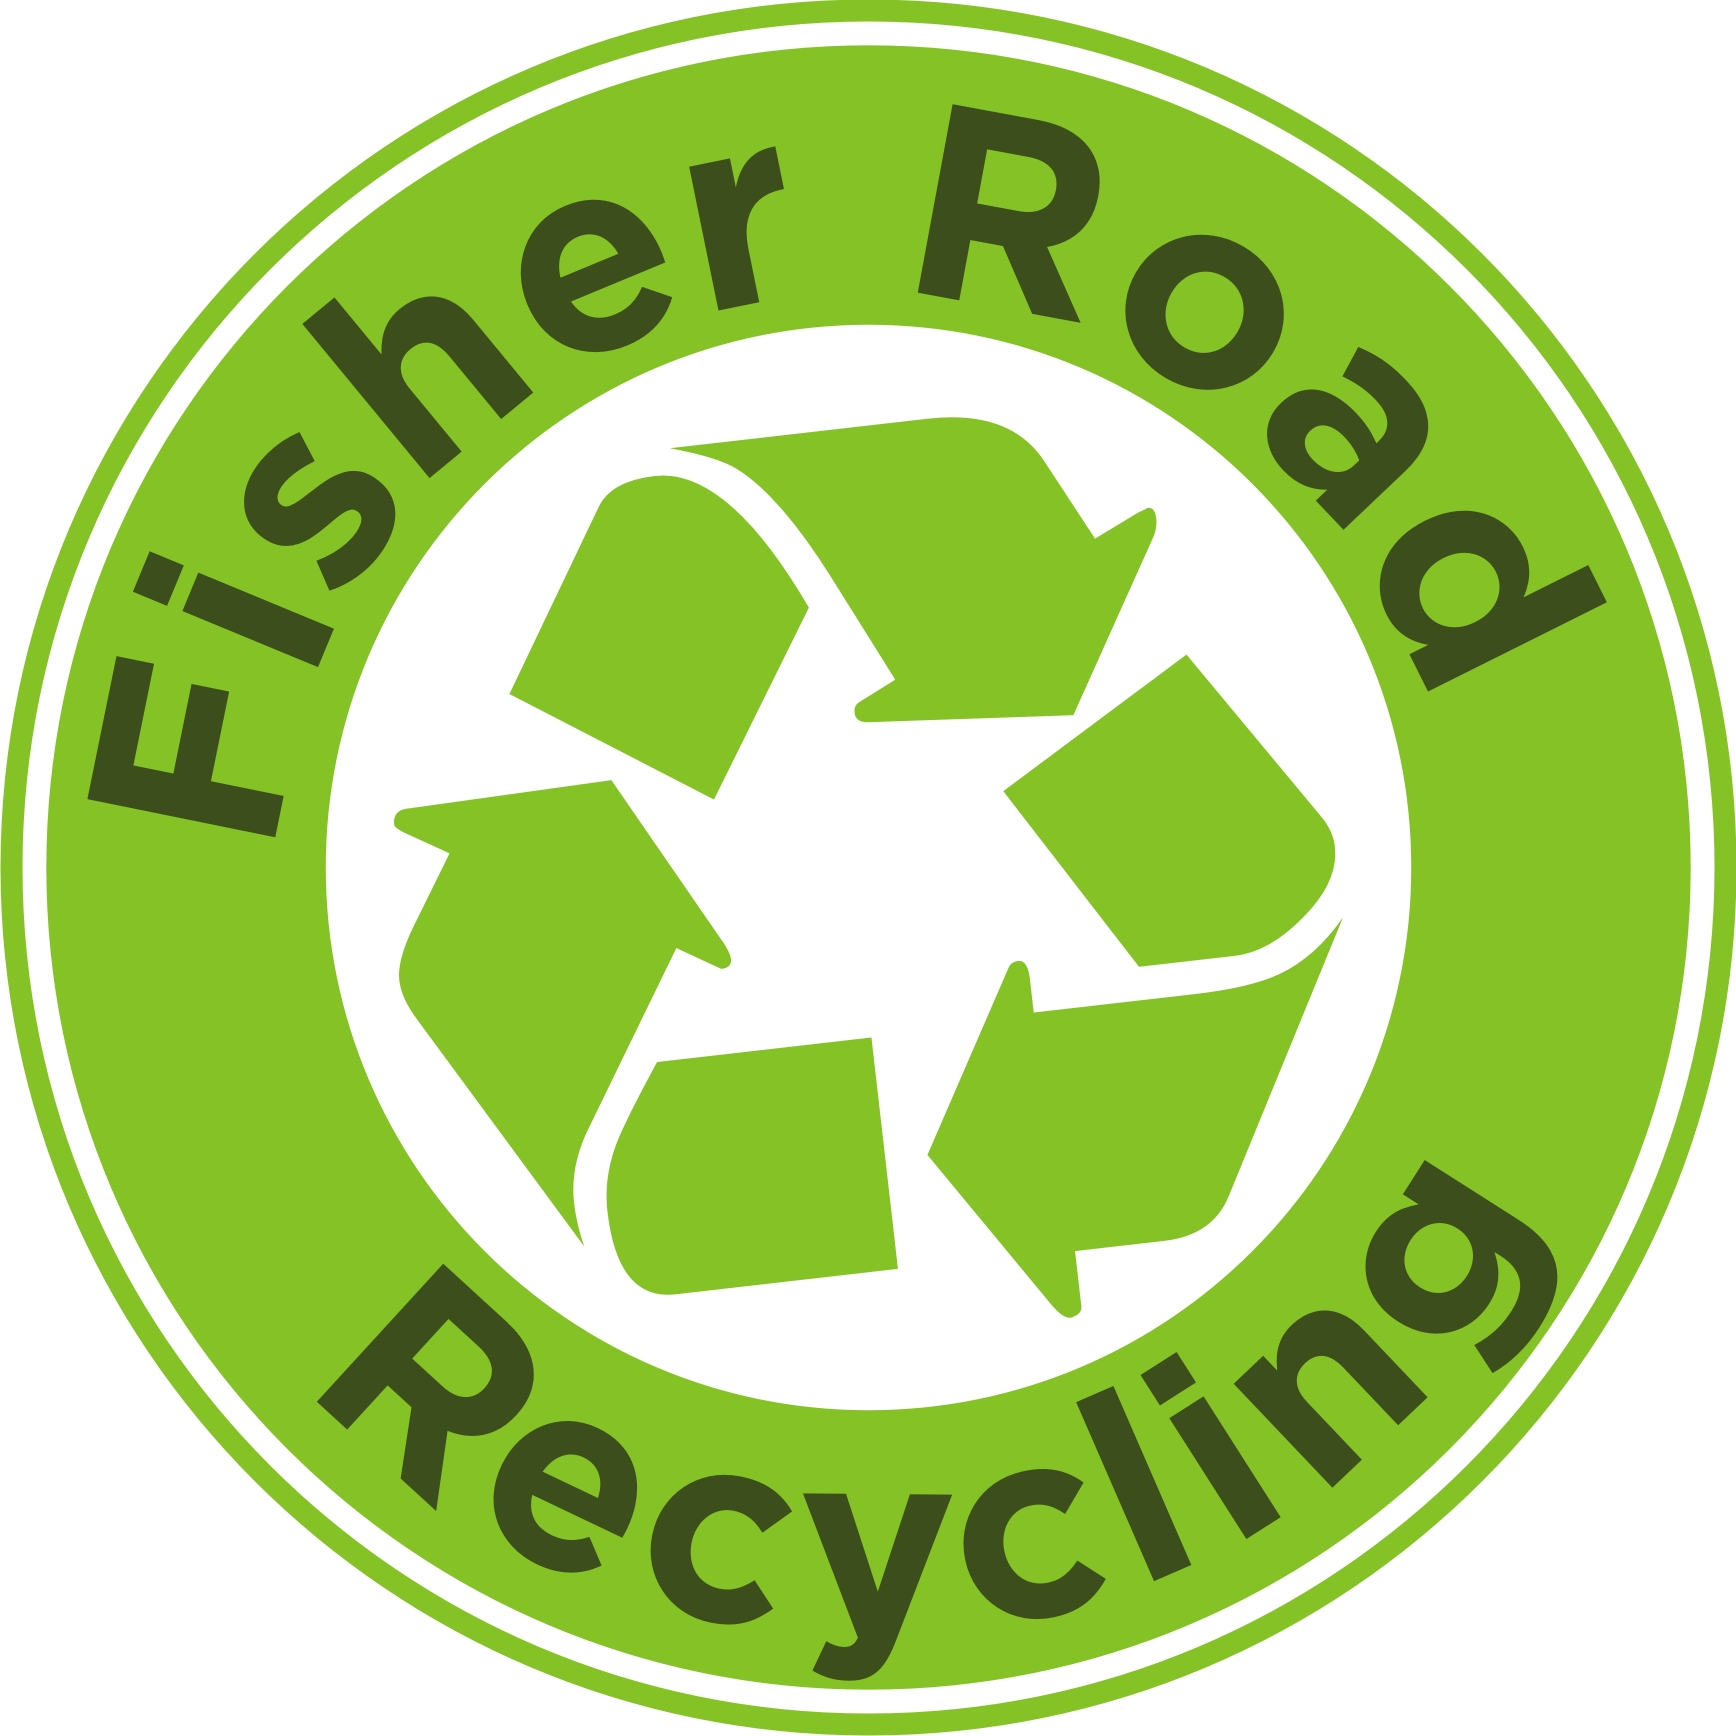 Fisher Rd. Recycling